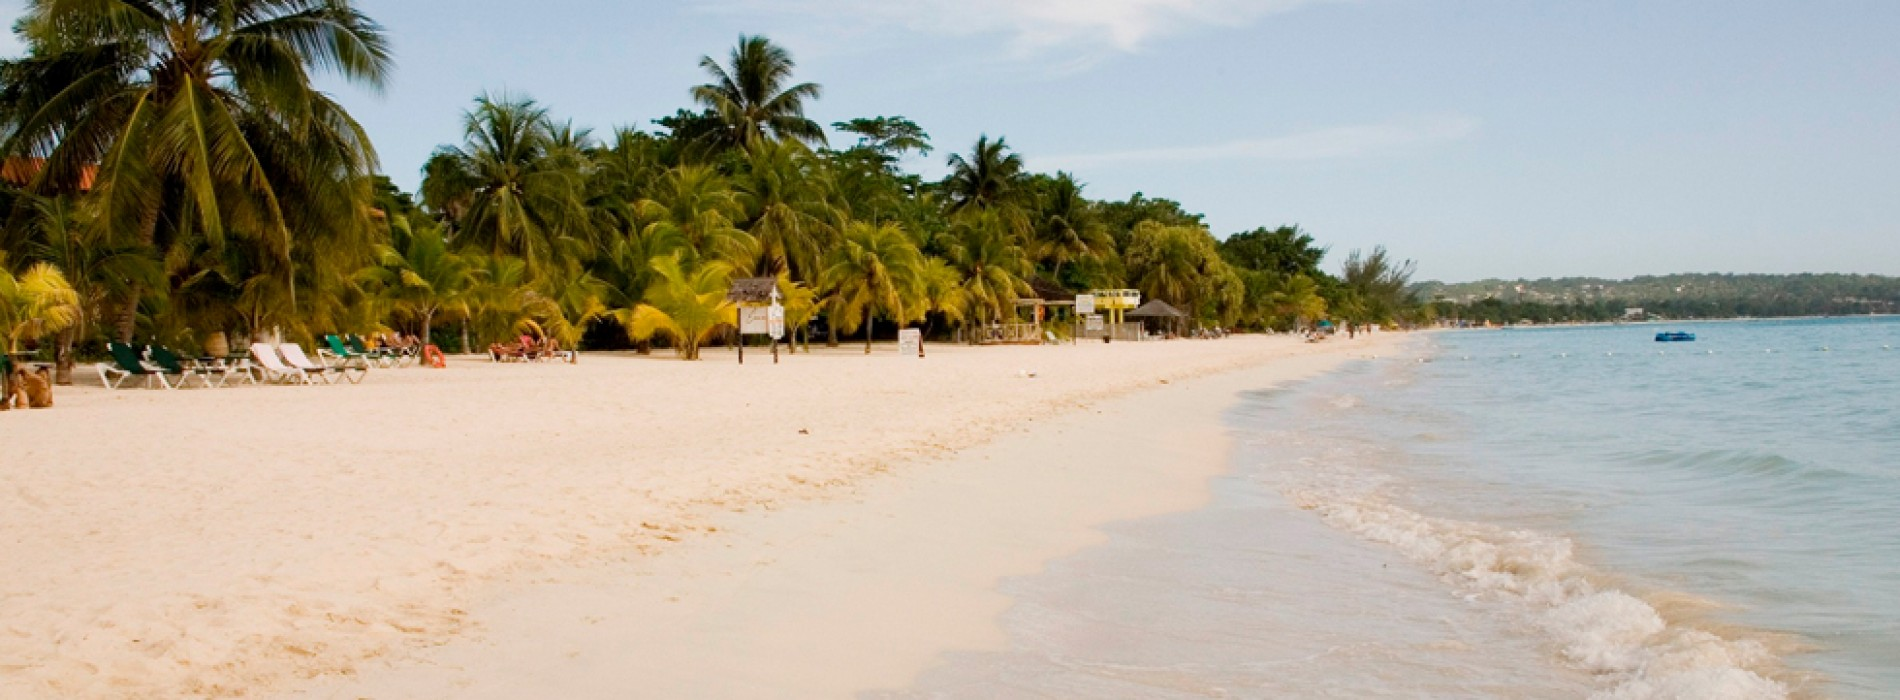 Why should you add Jamaica to your vacation goals?